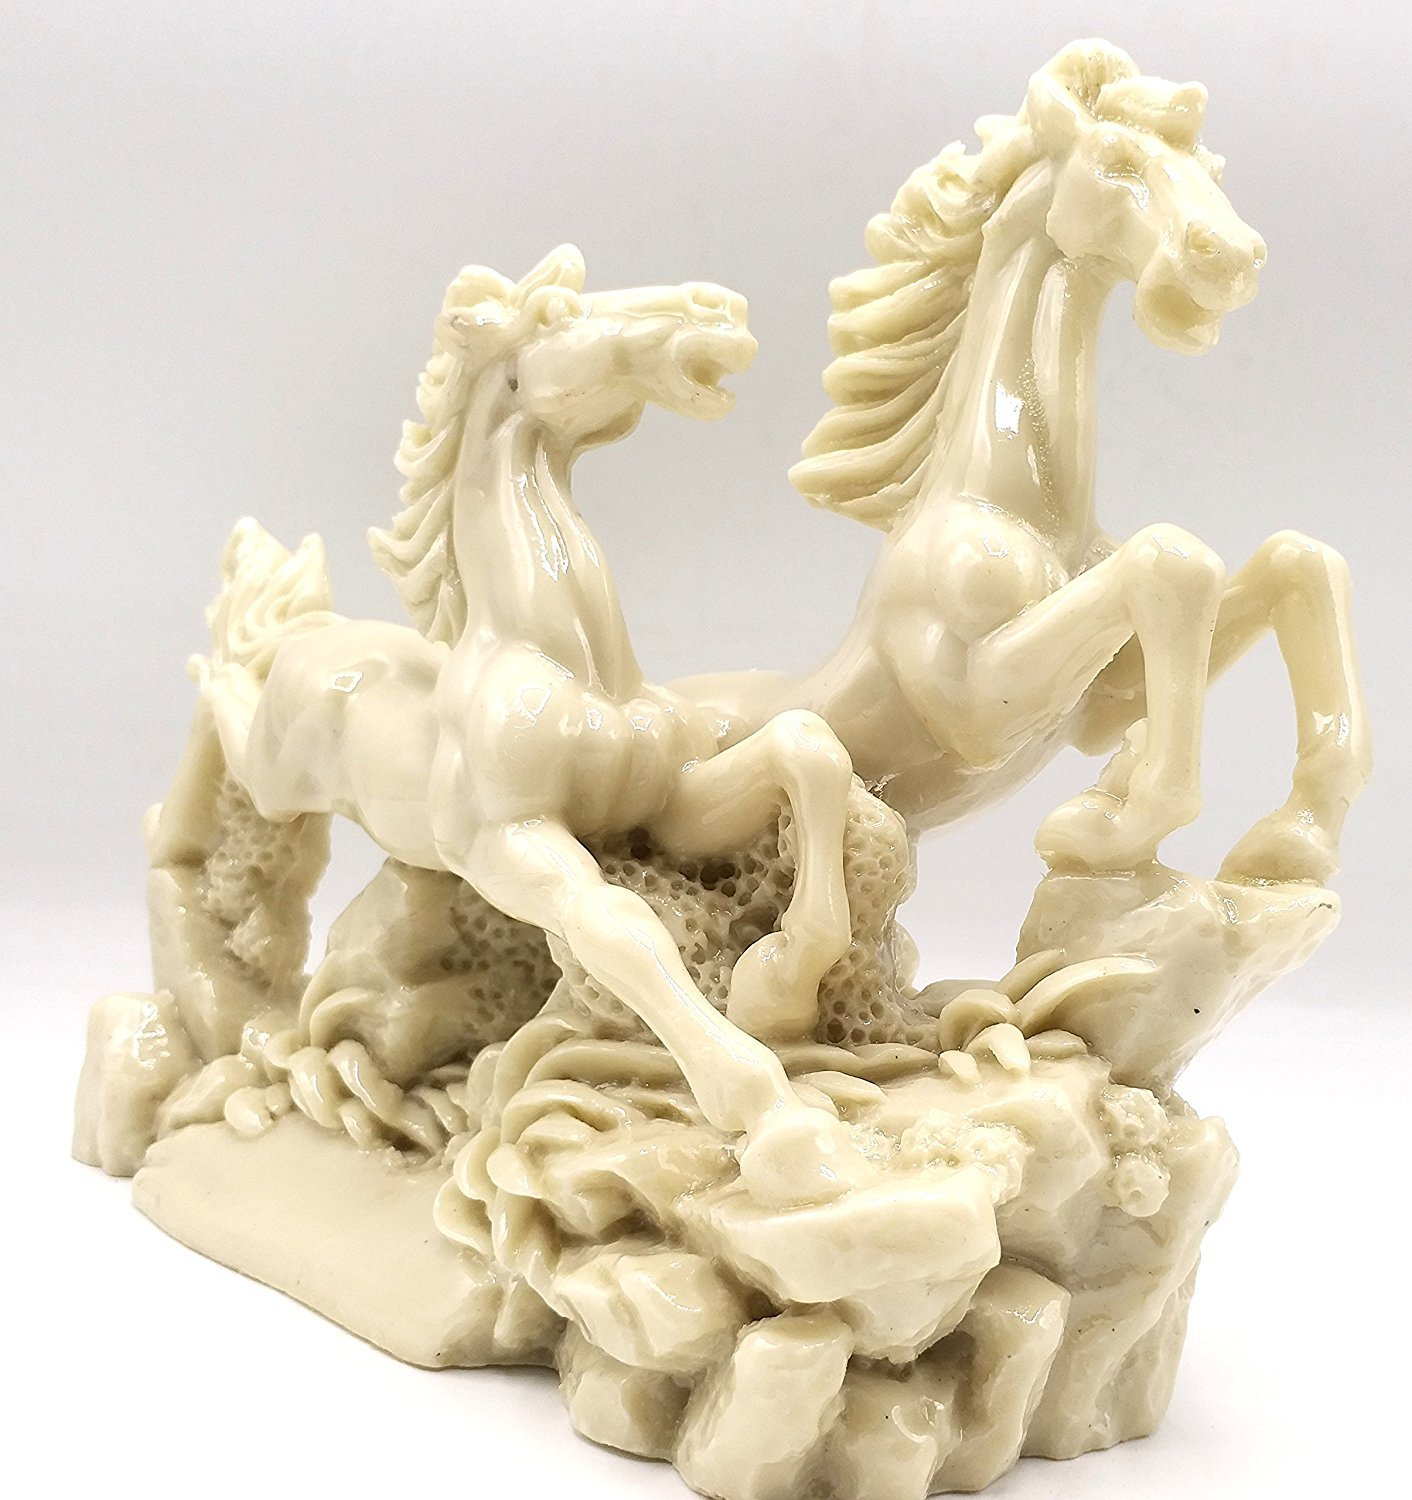 Odishabazaar Feng Shui Running Horse Wealth Power Statue Figurine Home